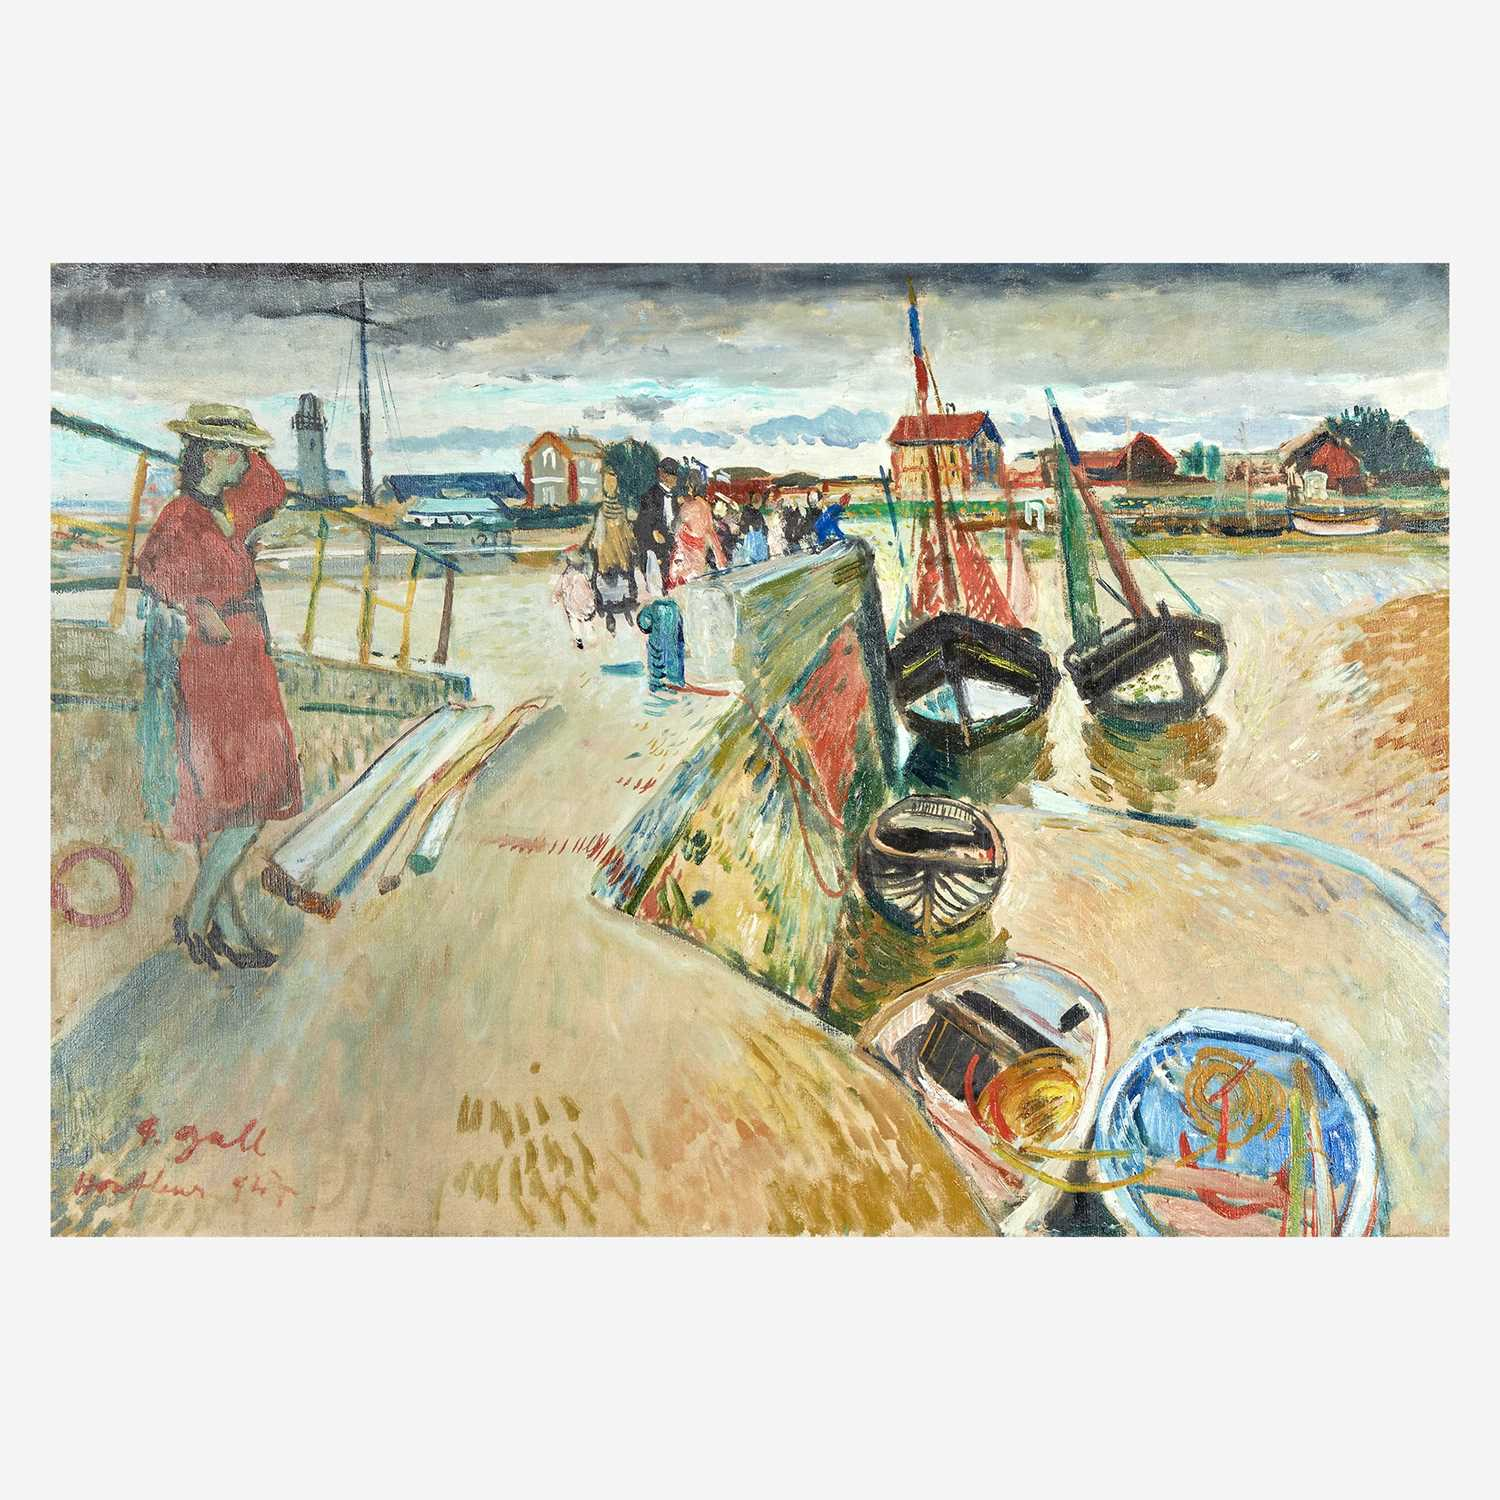 Lot 20 - François Gall (Hungarian/French, 1912-1987)